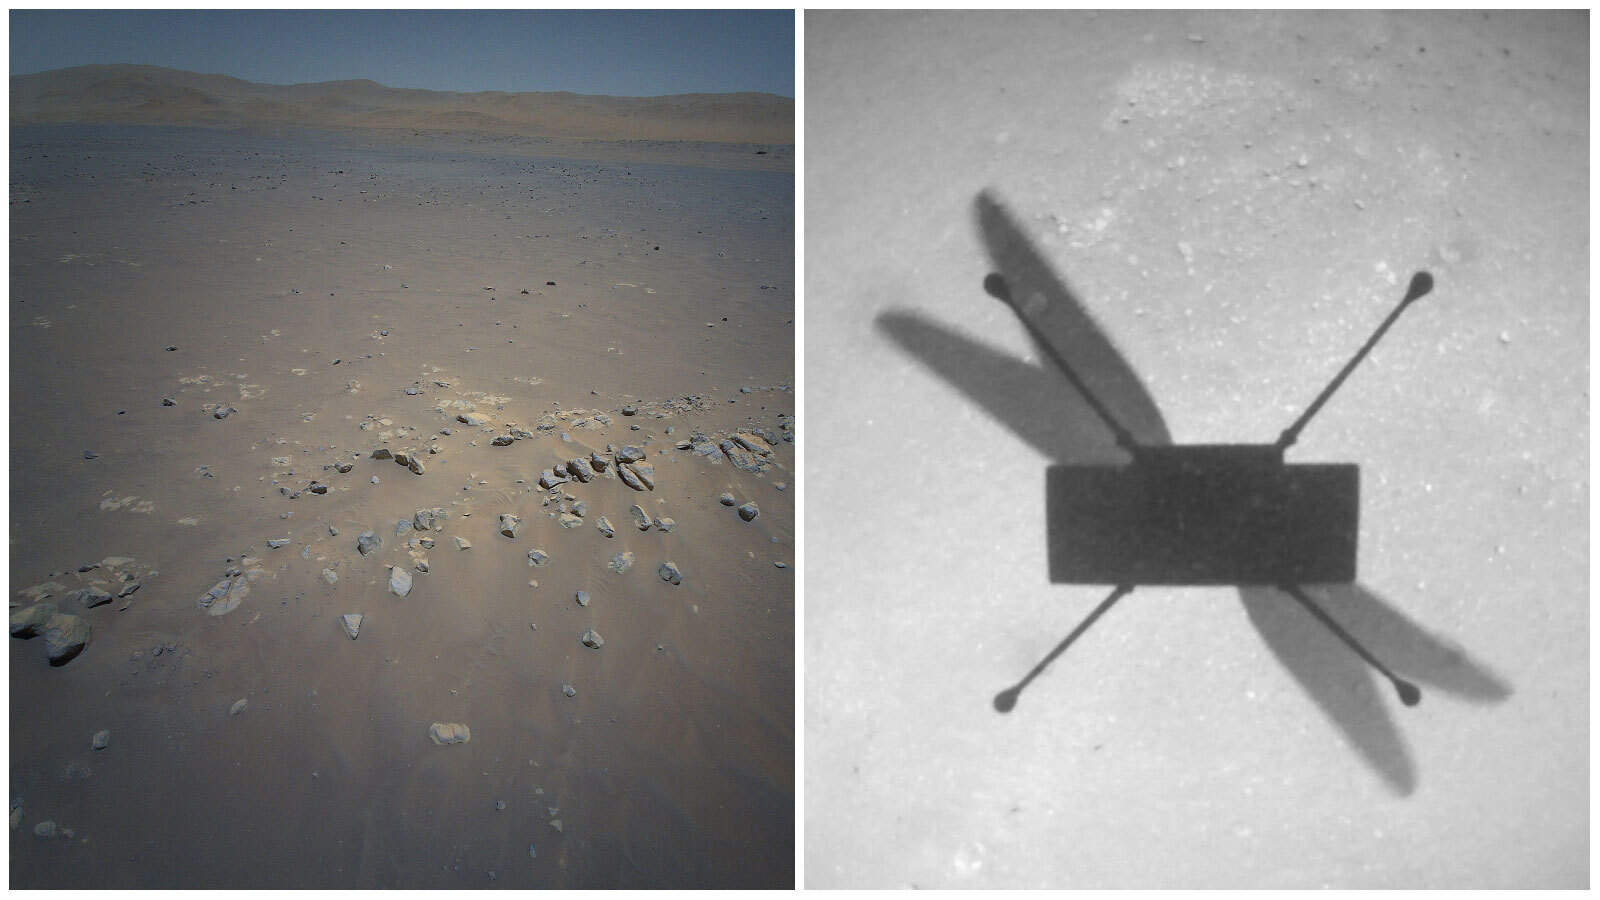 Aviation Week Awards NASA's Ingenuity Mars Helicopter With Laureate